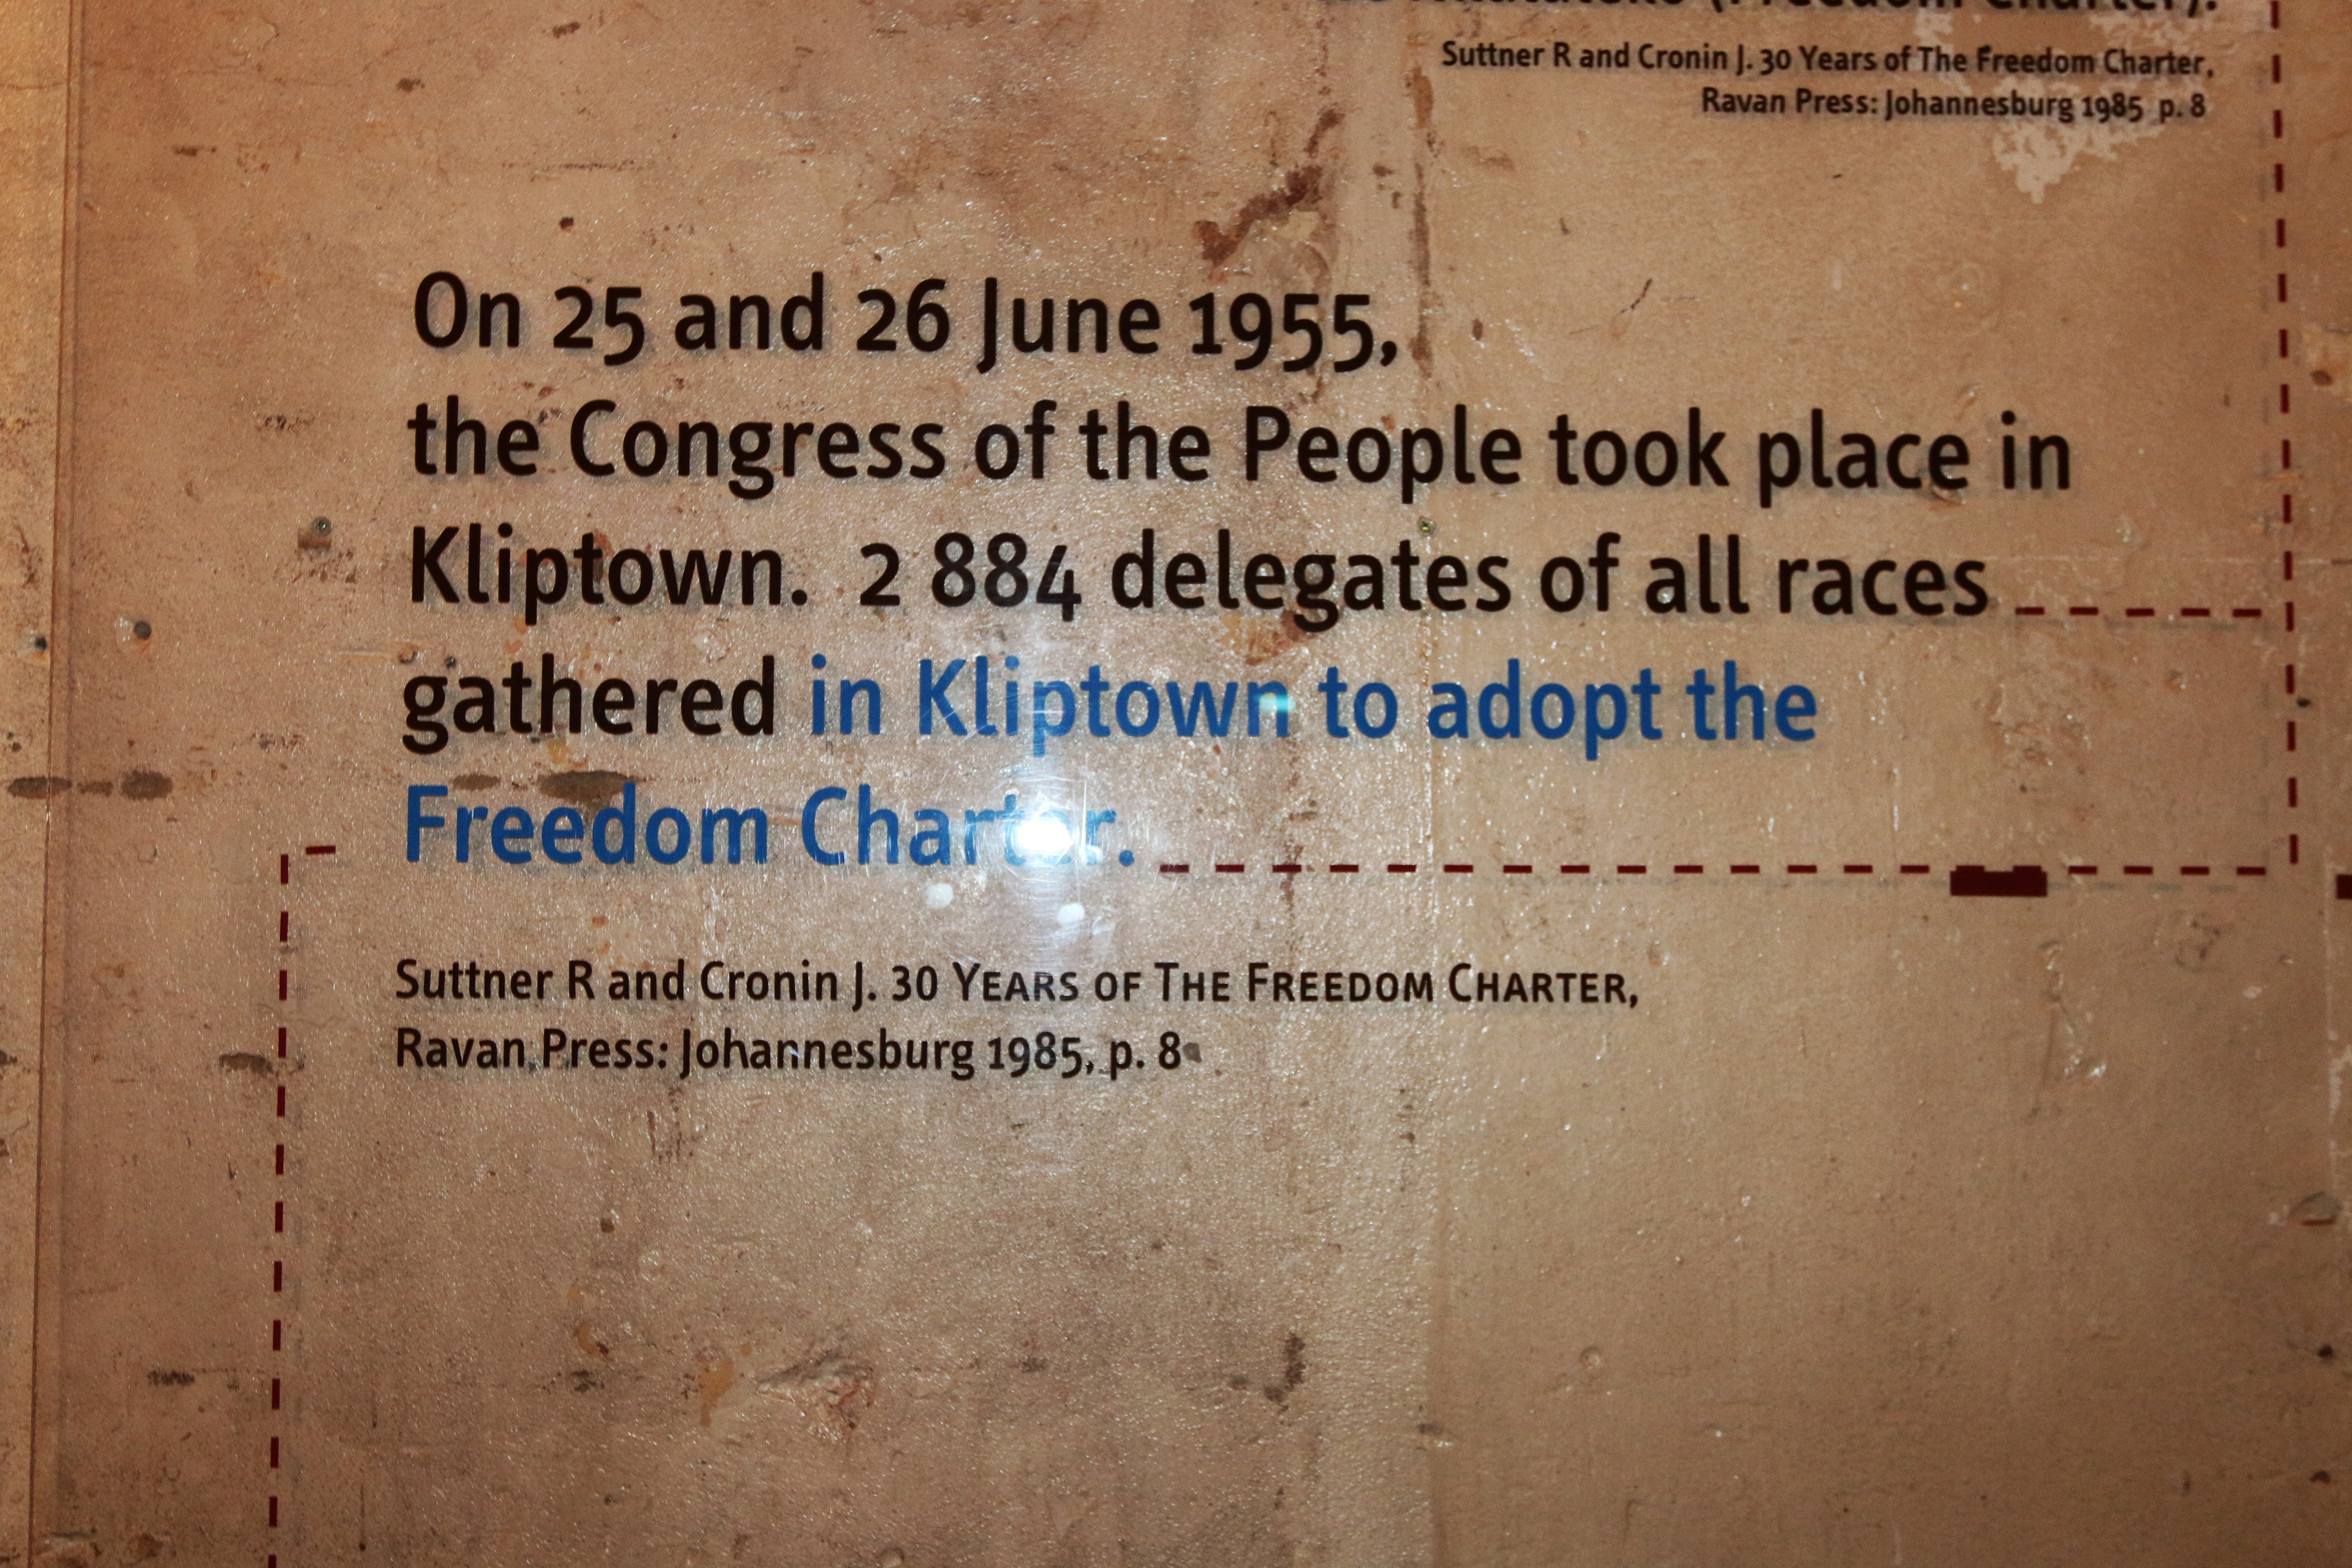 Freedom Charter dates